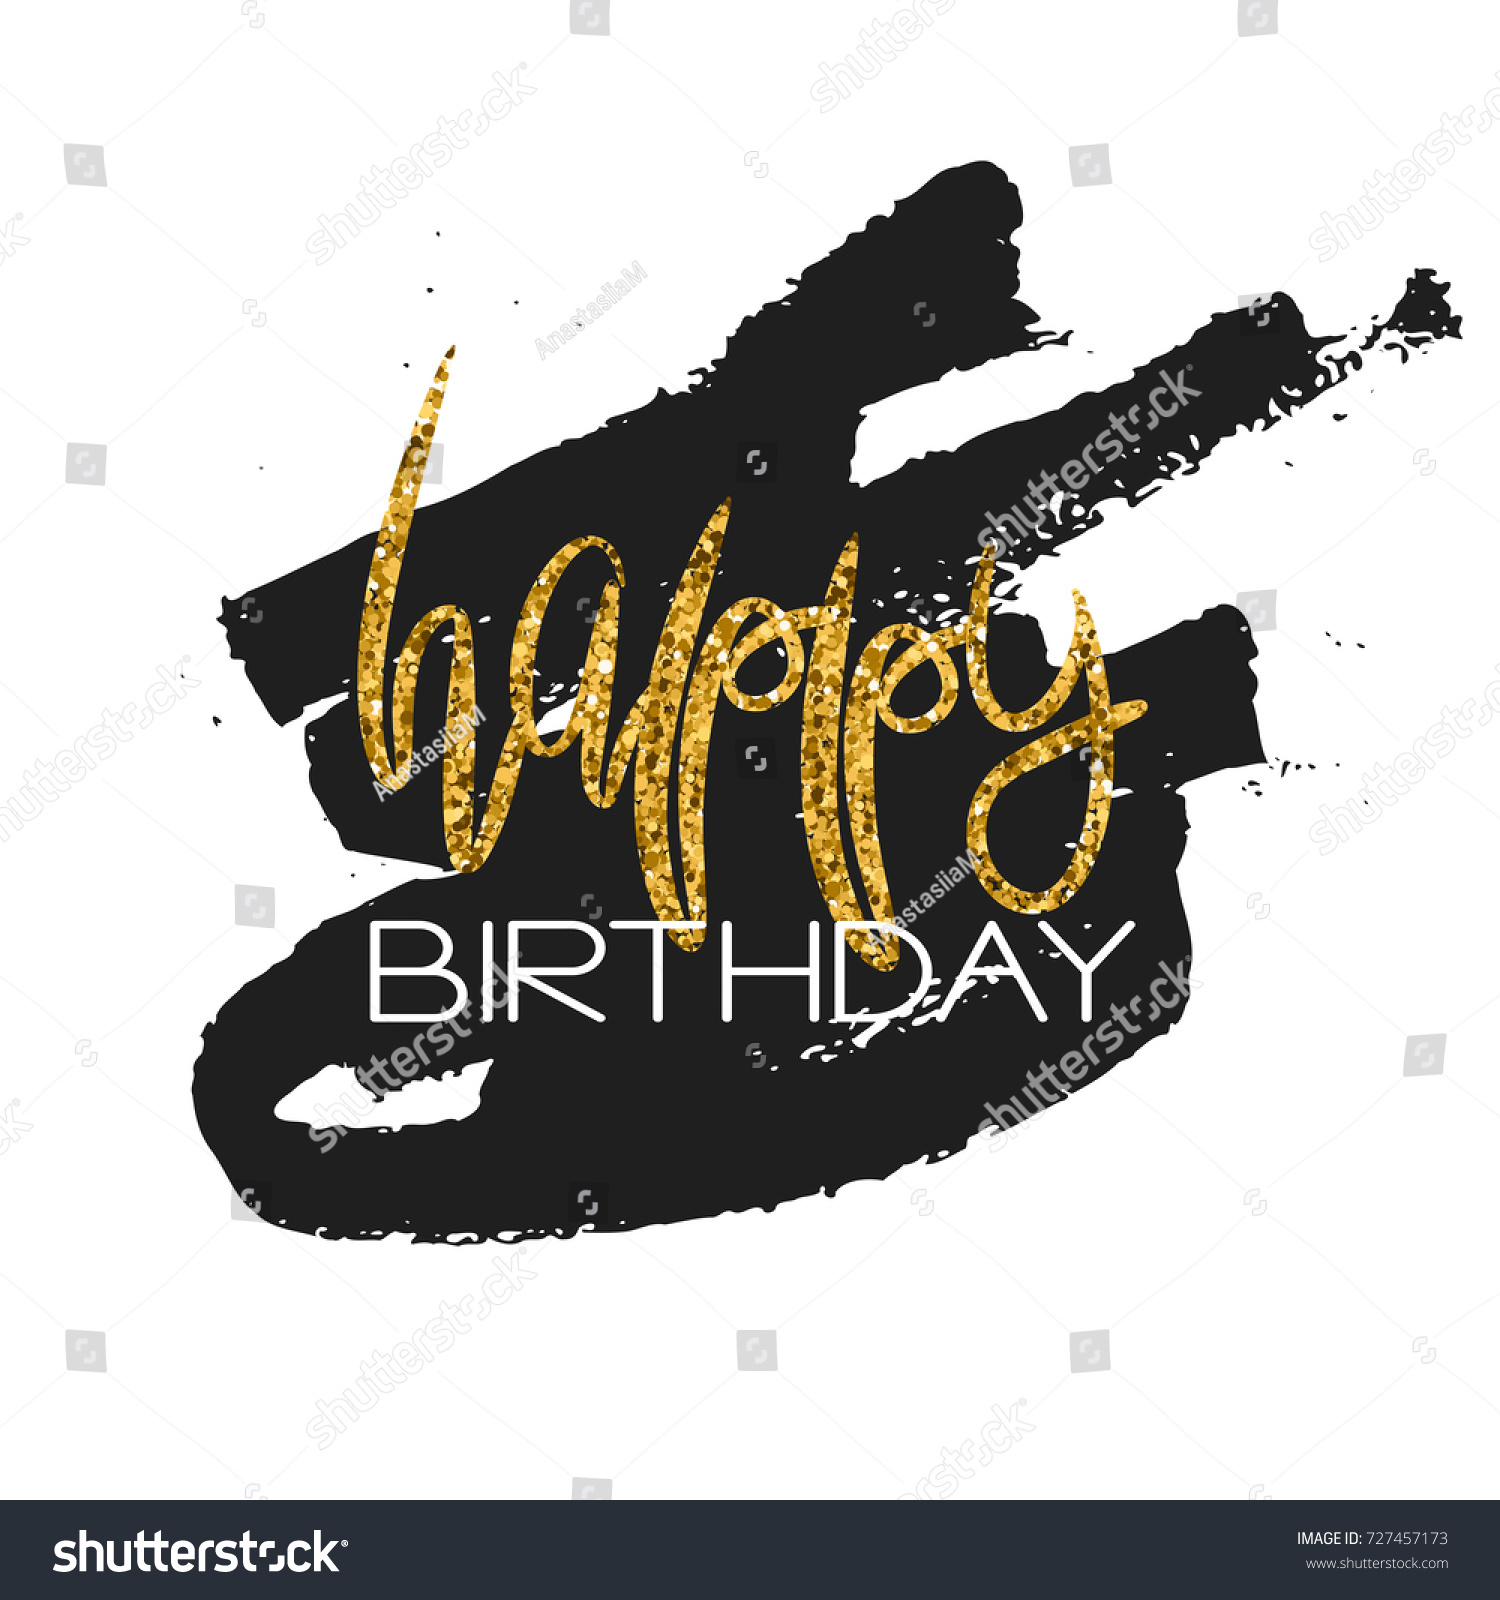 Stylish Happy Birthday Card Template Gold Glitter Phrase And Black Paint Smear Isolated On White